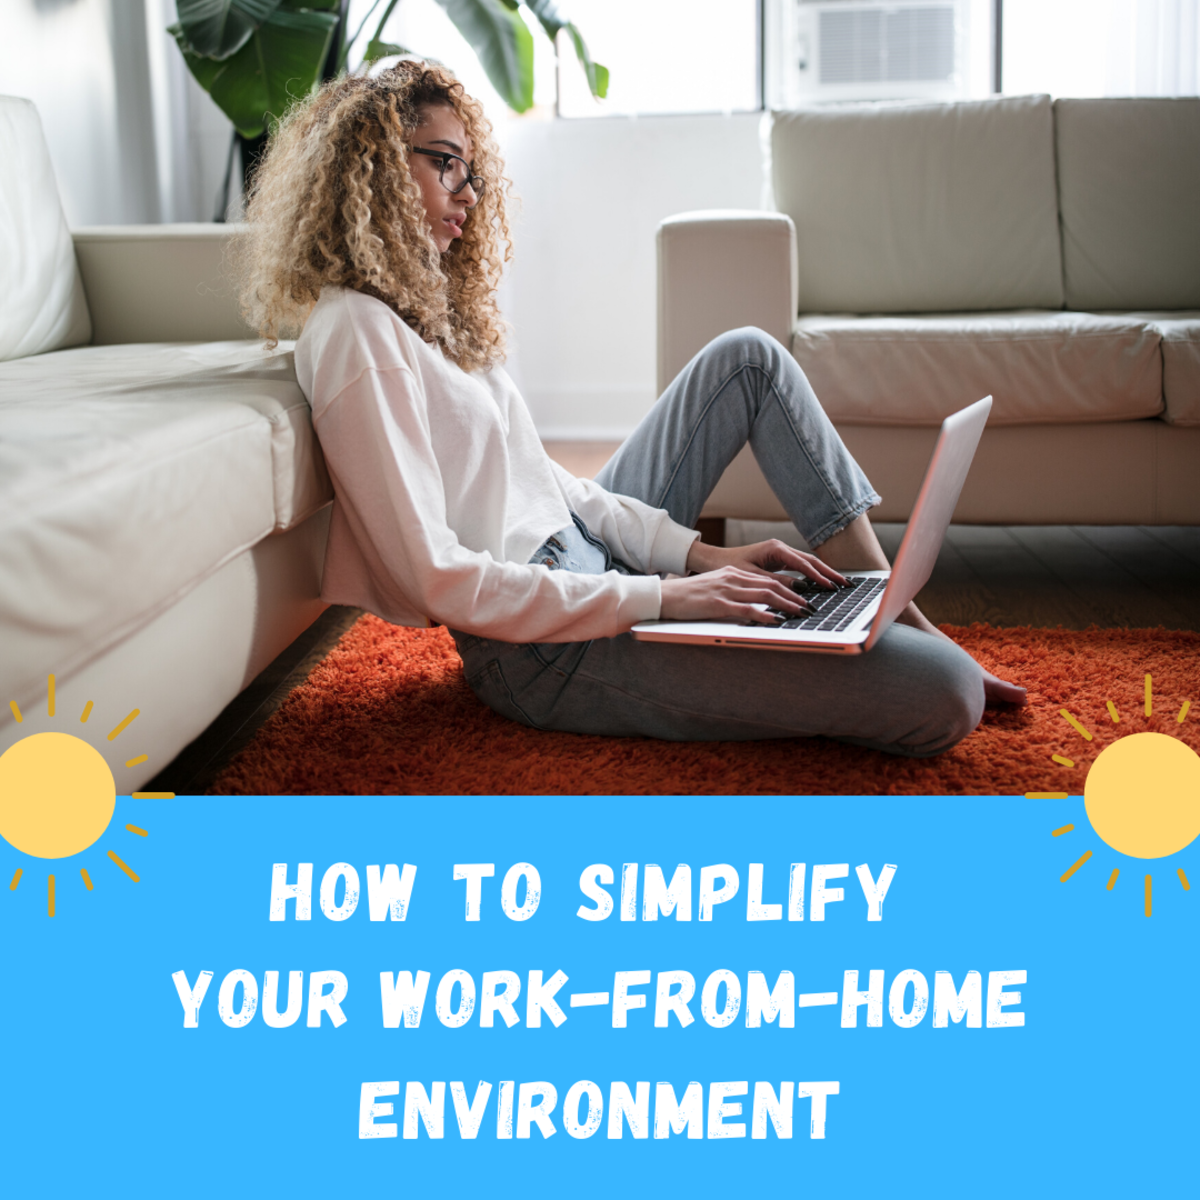 Simplify your home environment and be a more efficient worker.